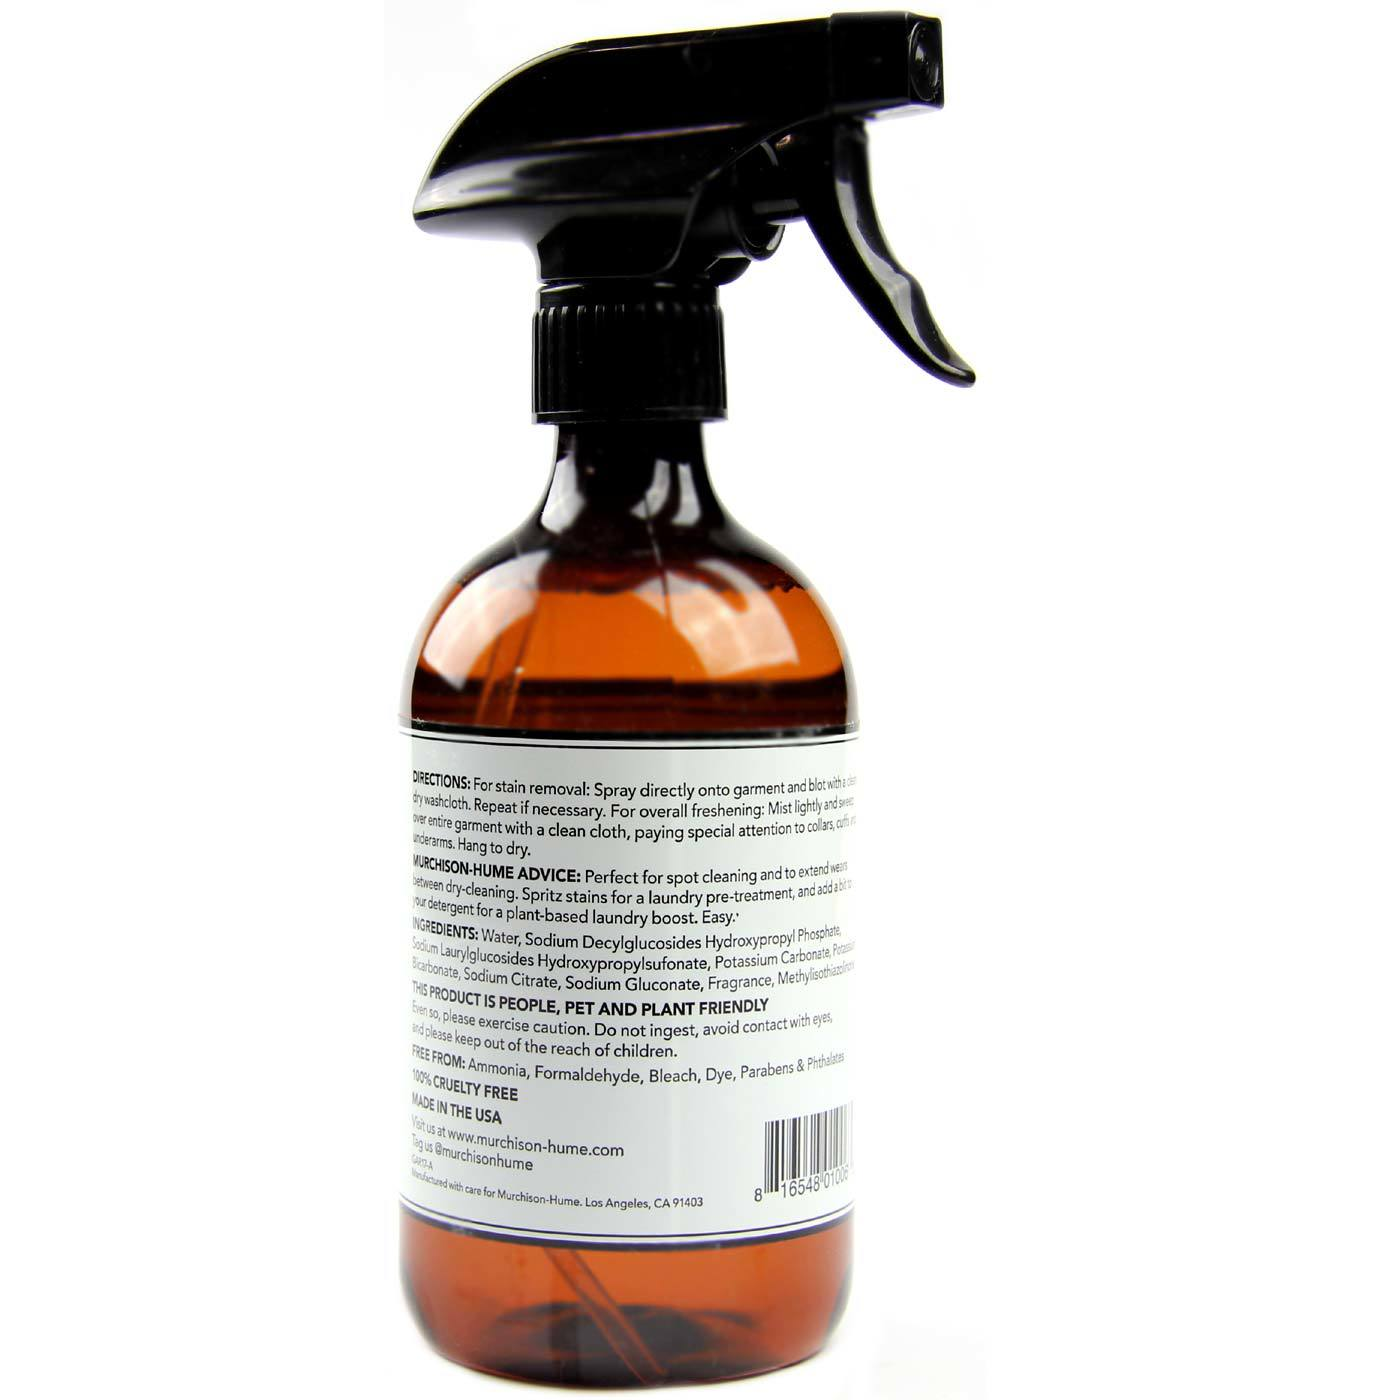 View Image Garment Groom Stain Remover